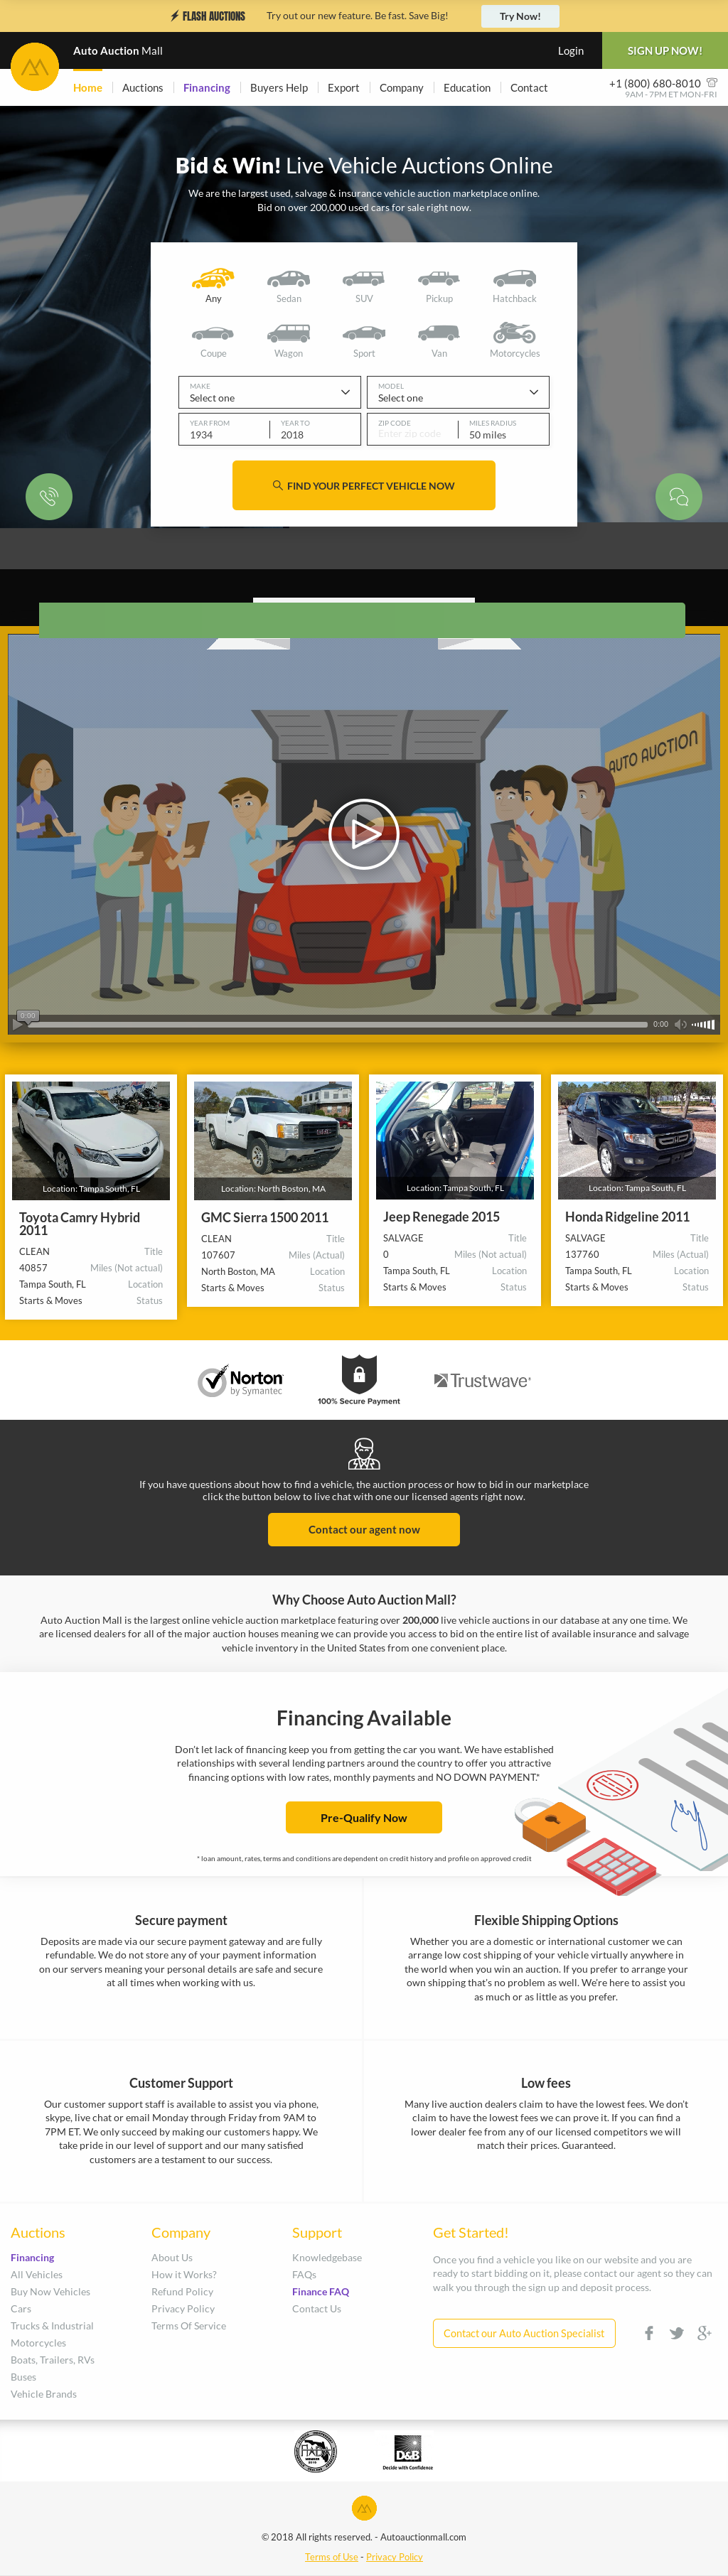 Online Car Auction >> Auto Auction Mall Competitors Revenue And Employees Owler